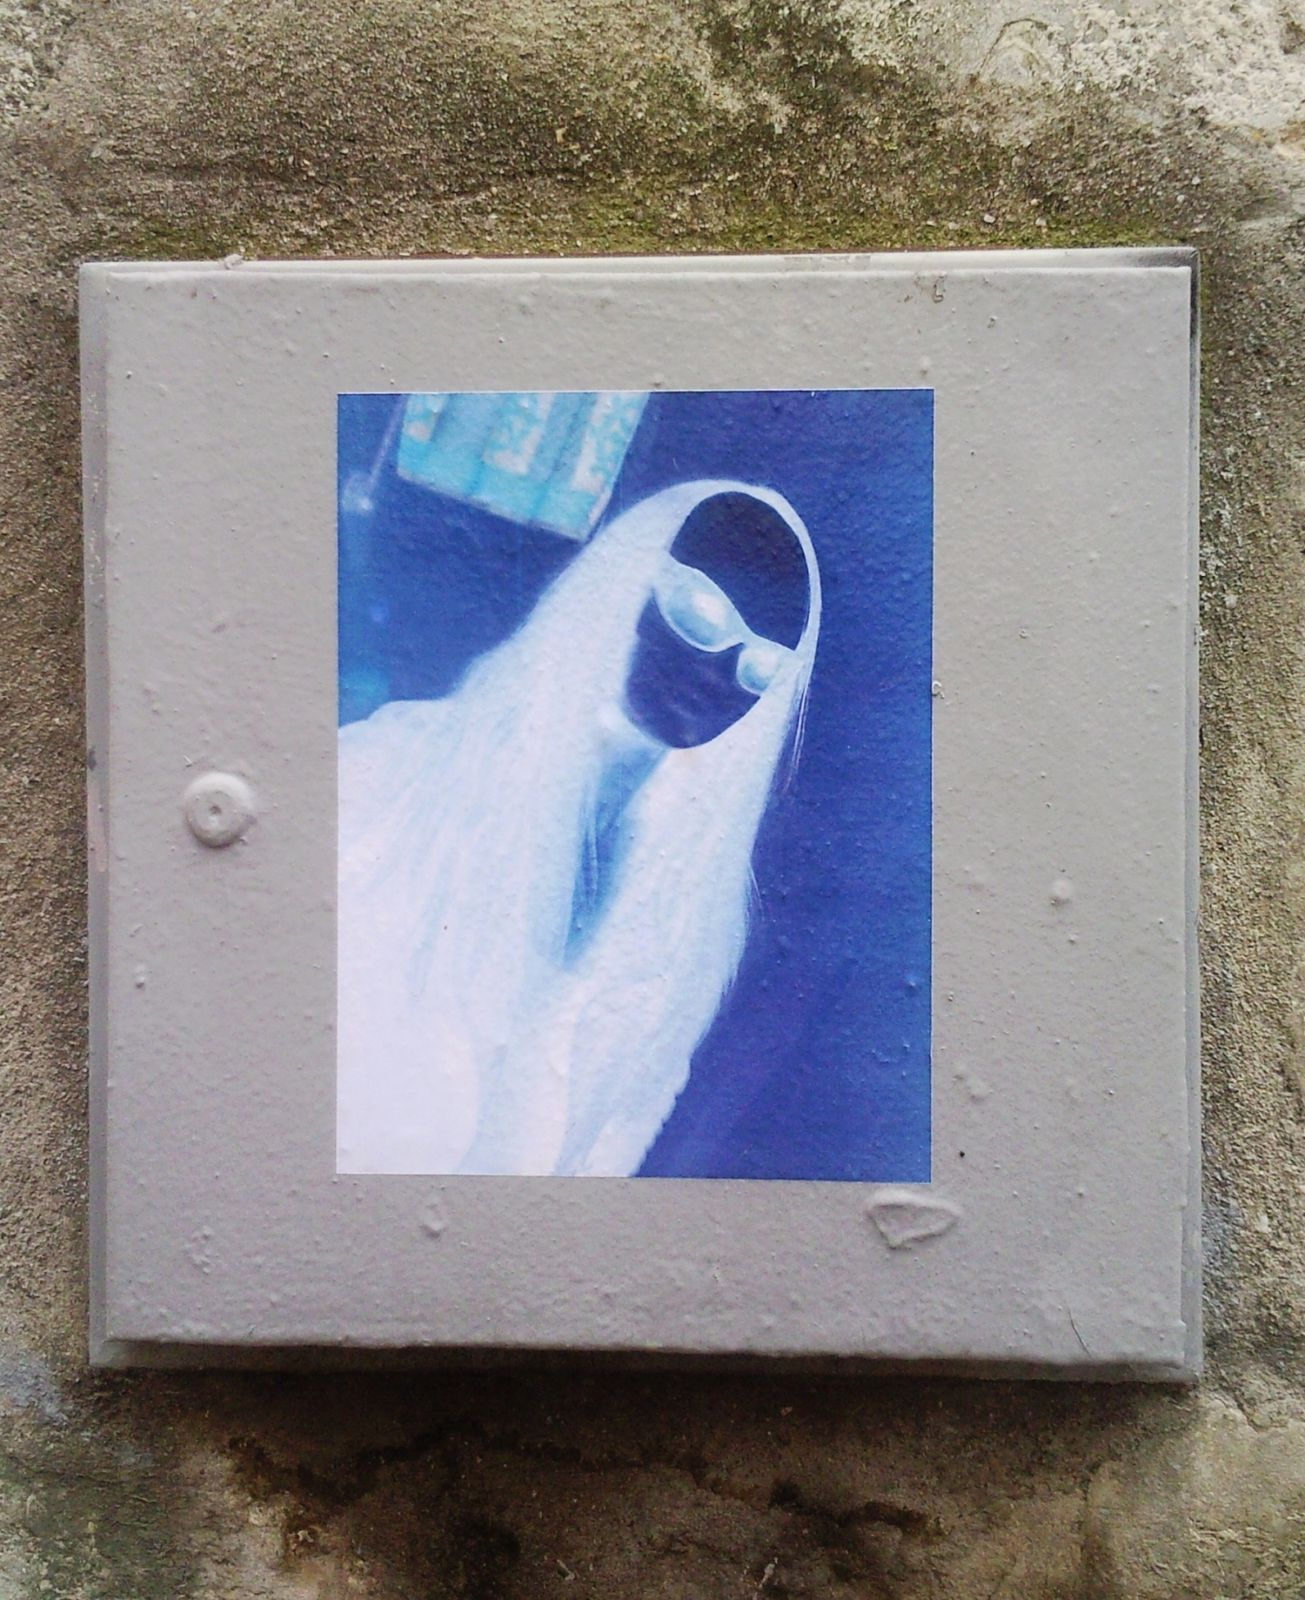 http://idata.over-blog.com/3/42/41/98/Street-Art-a-Montpellier/Photo014-copie-1.jpg